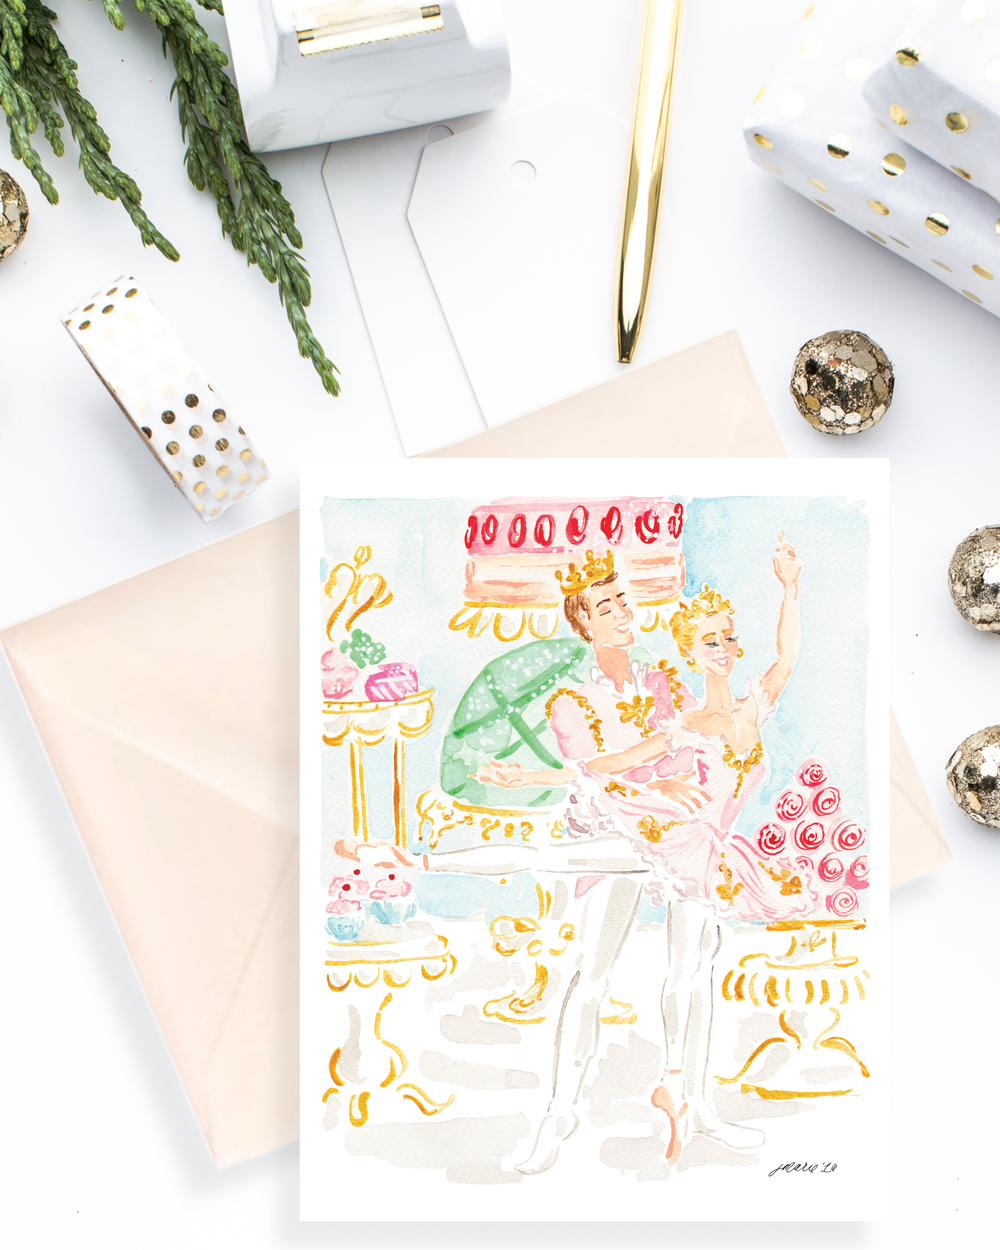 The Nutcracker Sugar Plum Fairy Watercolor Holiday Greeting Card by Simply Jessica Marie | Top Five Tips for Using Styled Stock Photos for Shop Owners | SC Stockshop